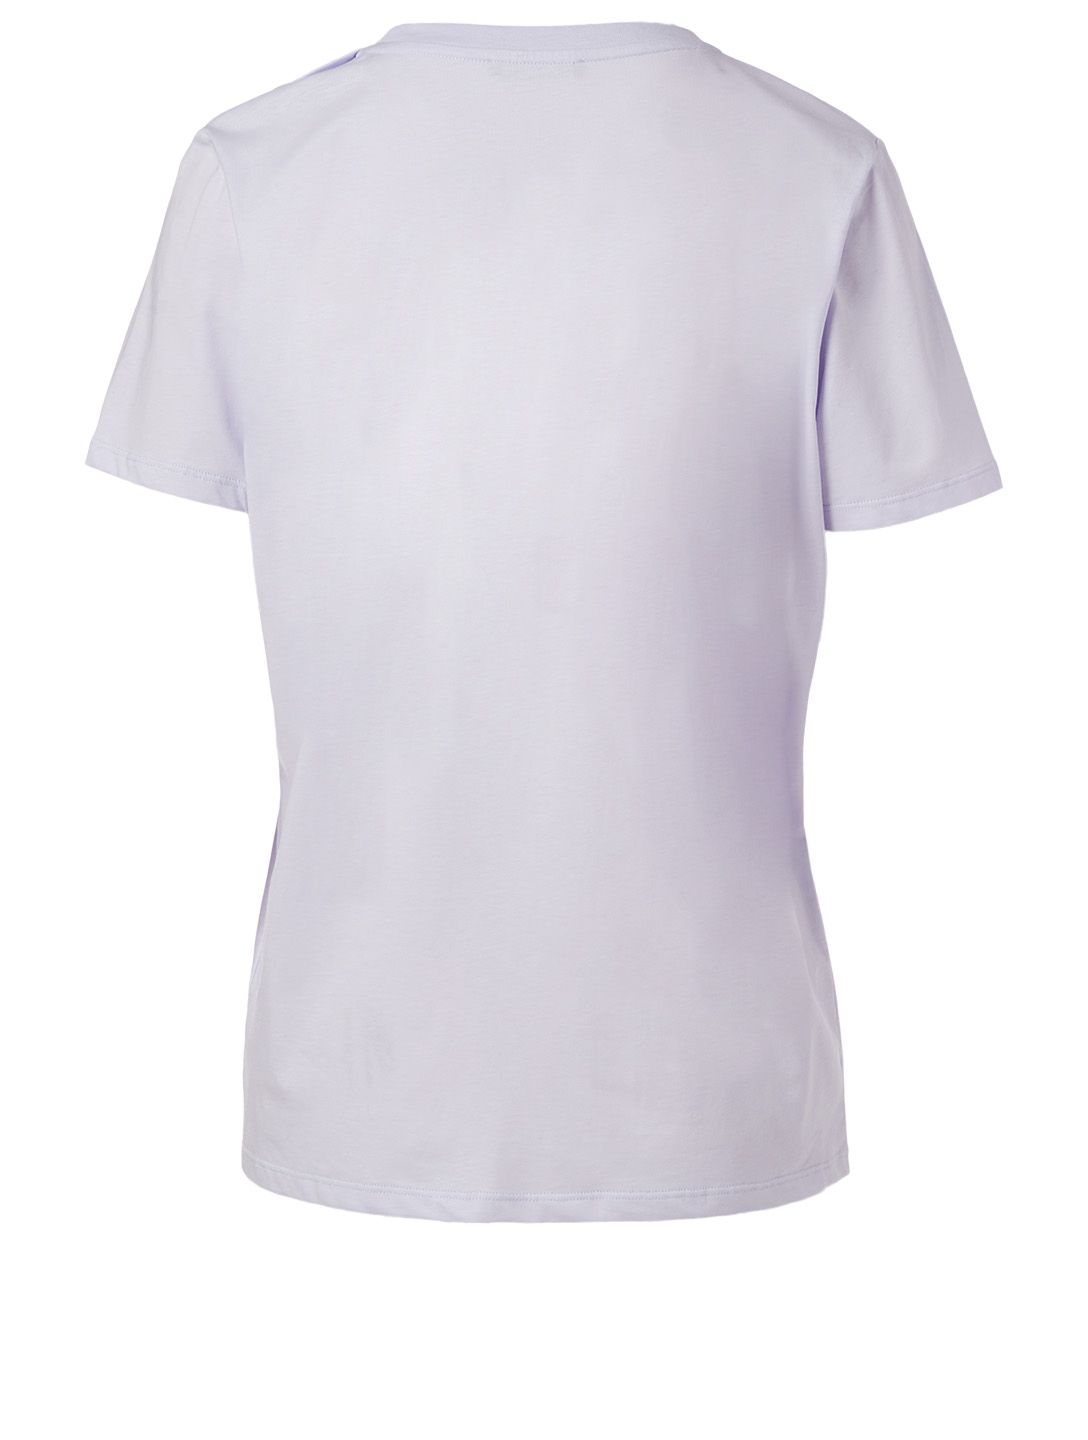 BALMAIN Cotton Logo T-Shirt With Buttons Women's Purple